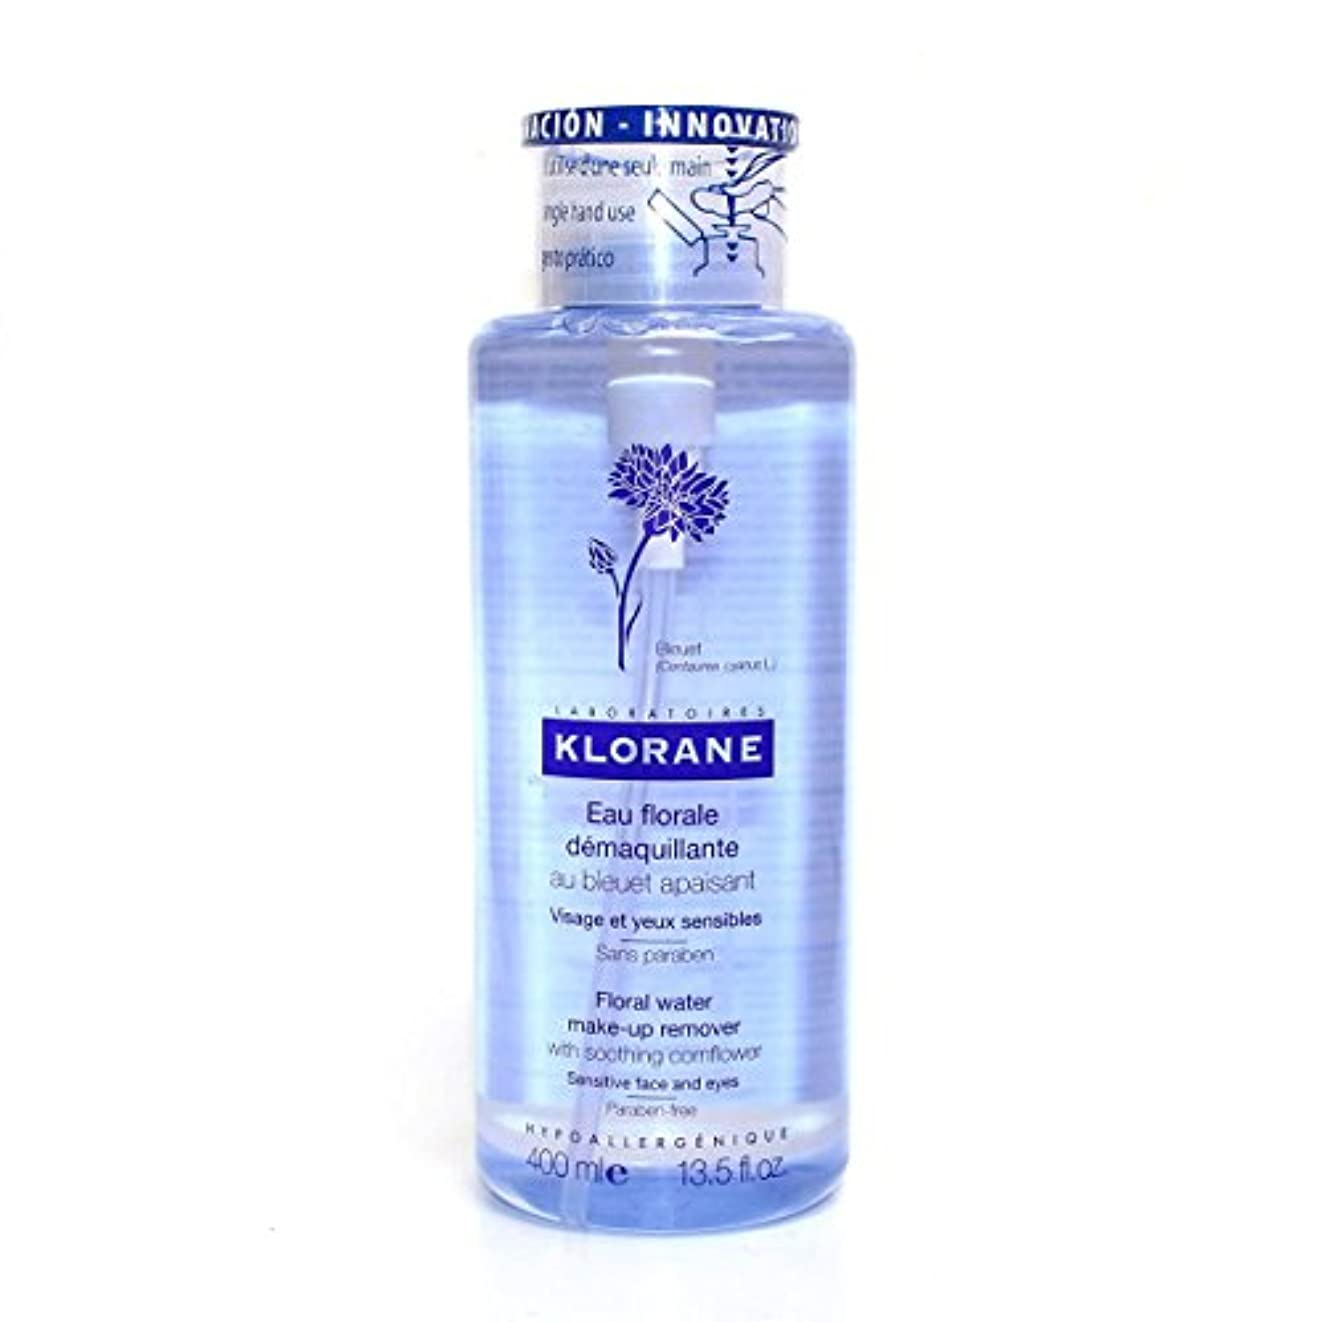 Klorane Floral Water Cleanser Face And Eyes 400ml [並行輸入品]